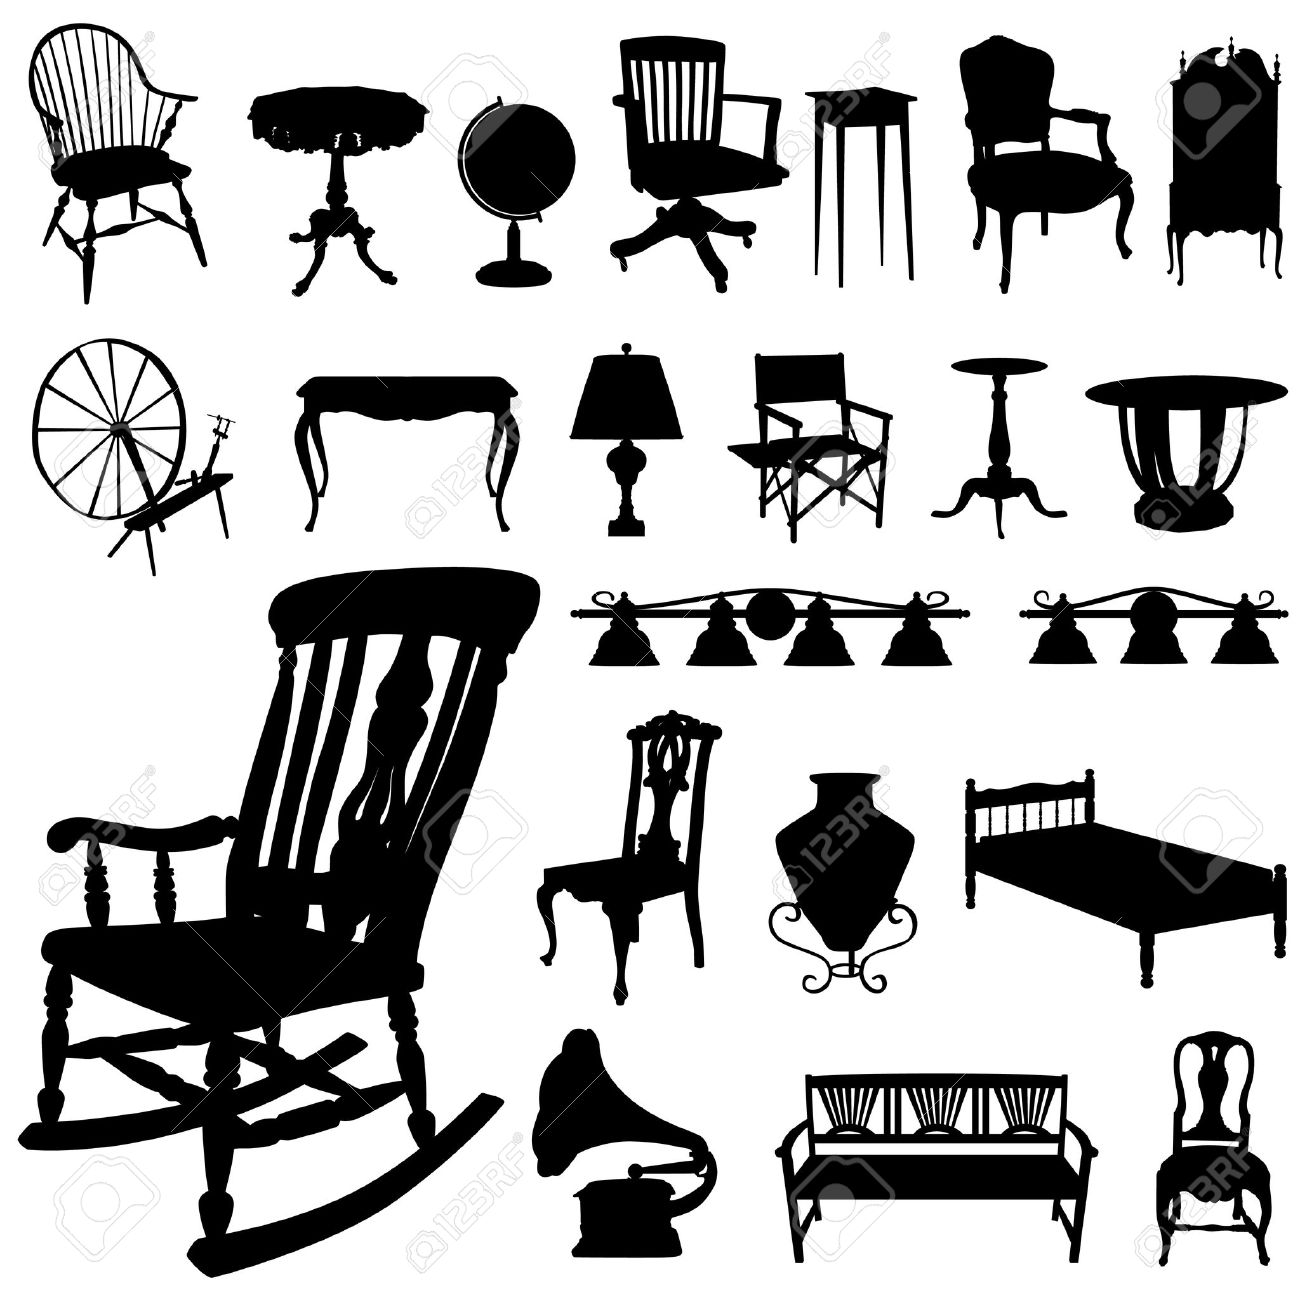 Antique chair silhouette - Vector Set Of Antique Furniture